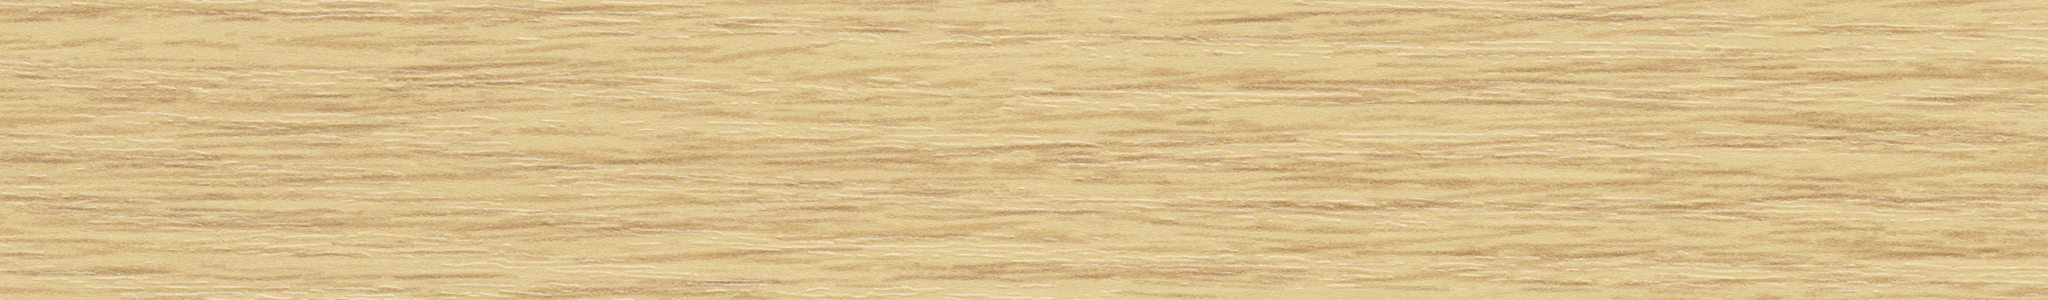 HD 44748 Melamine Edge Oak Pore